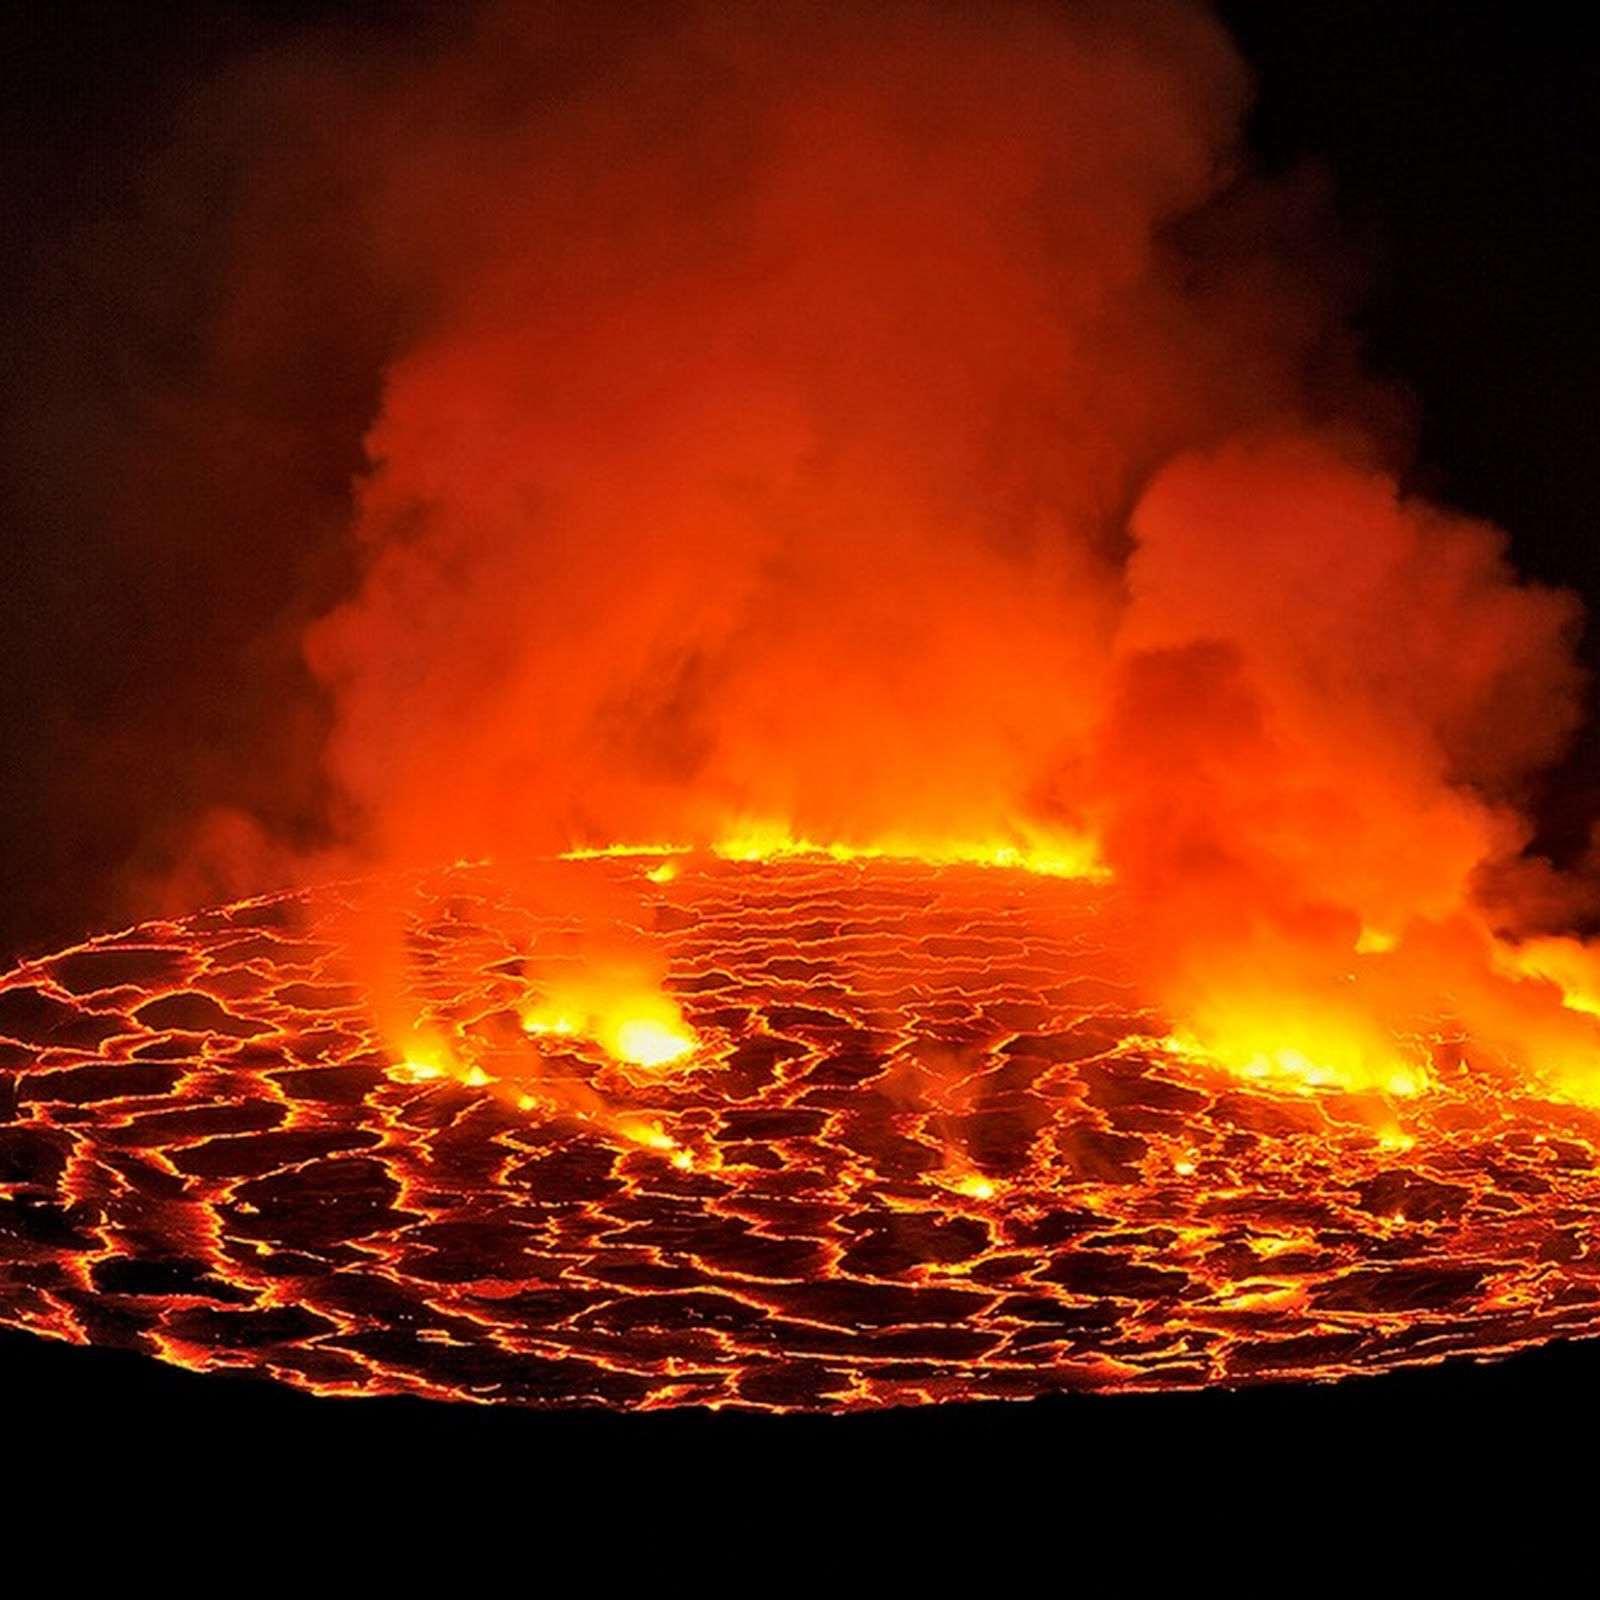 Lava Lakes: The Exposed Guts of Volcanoes